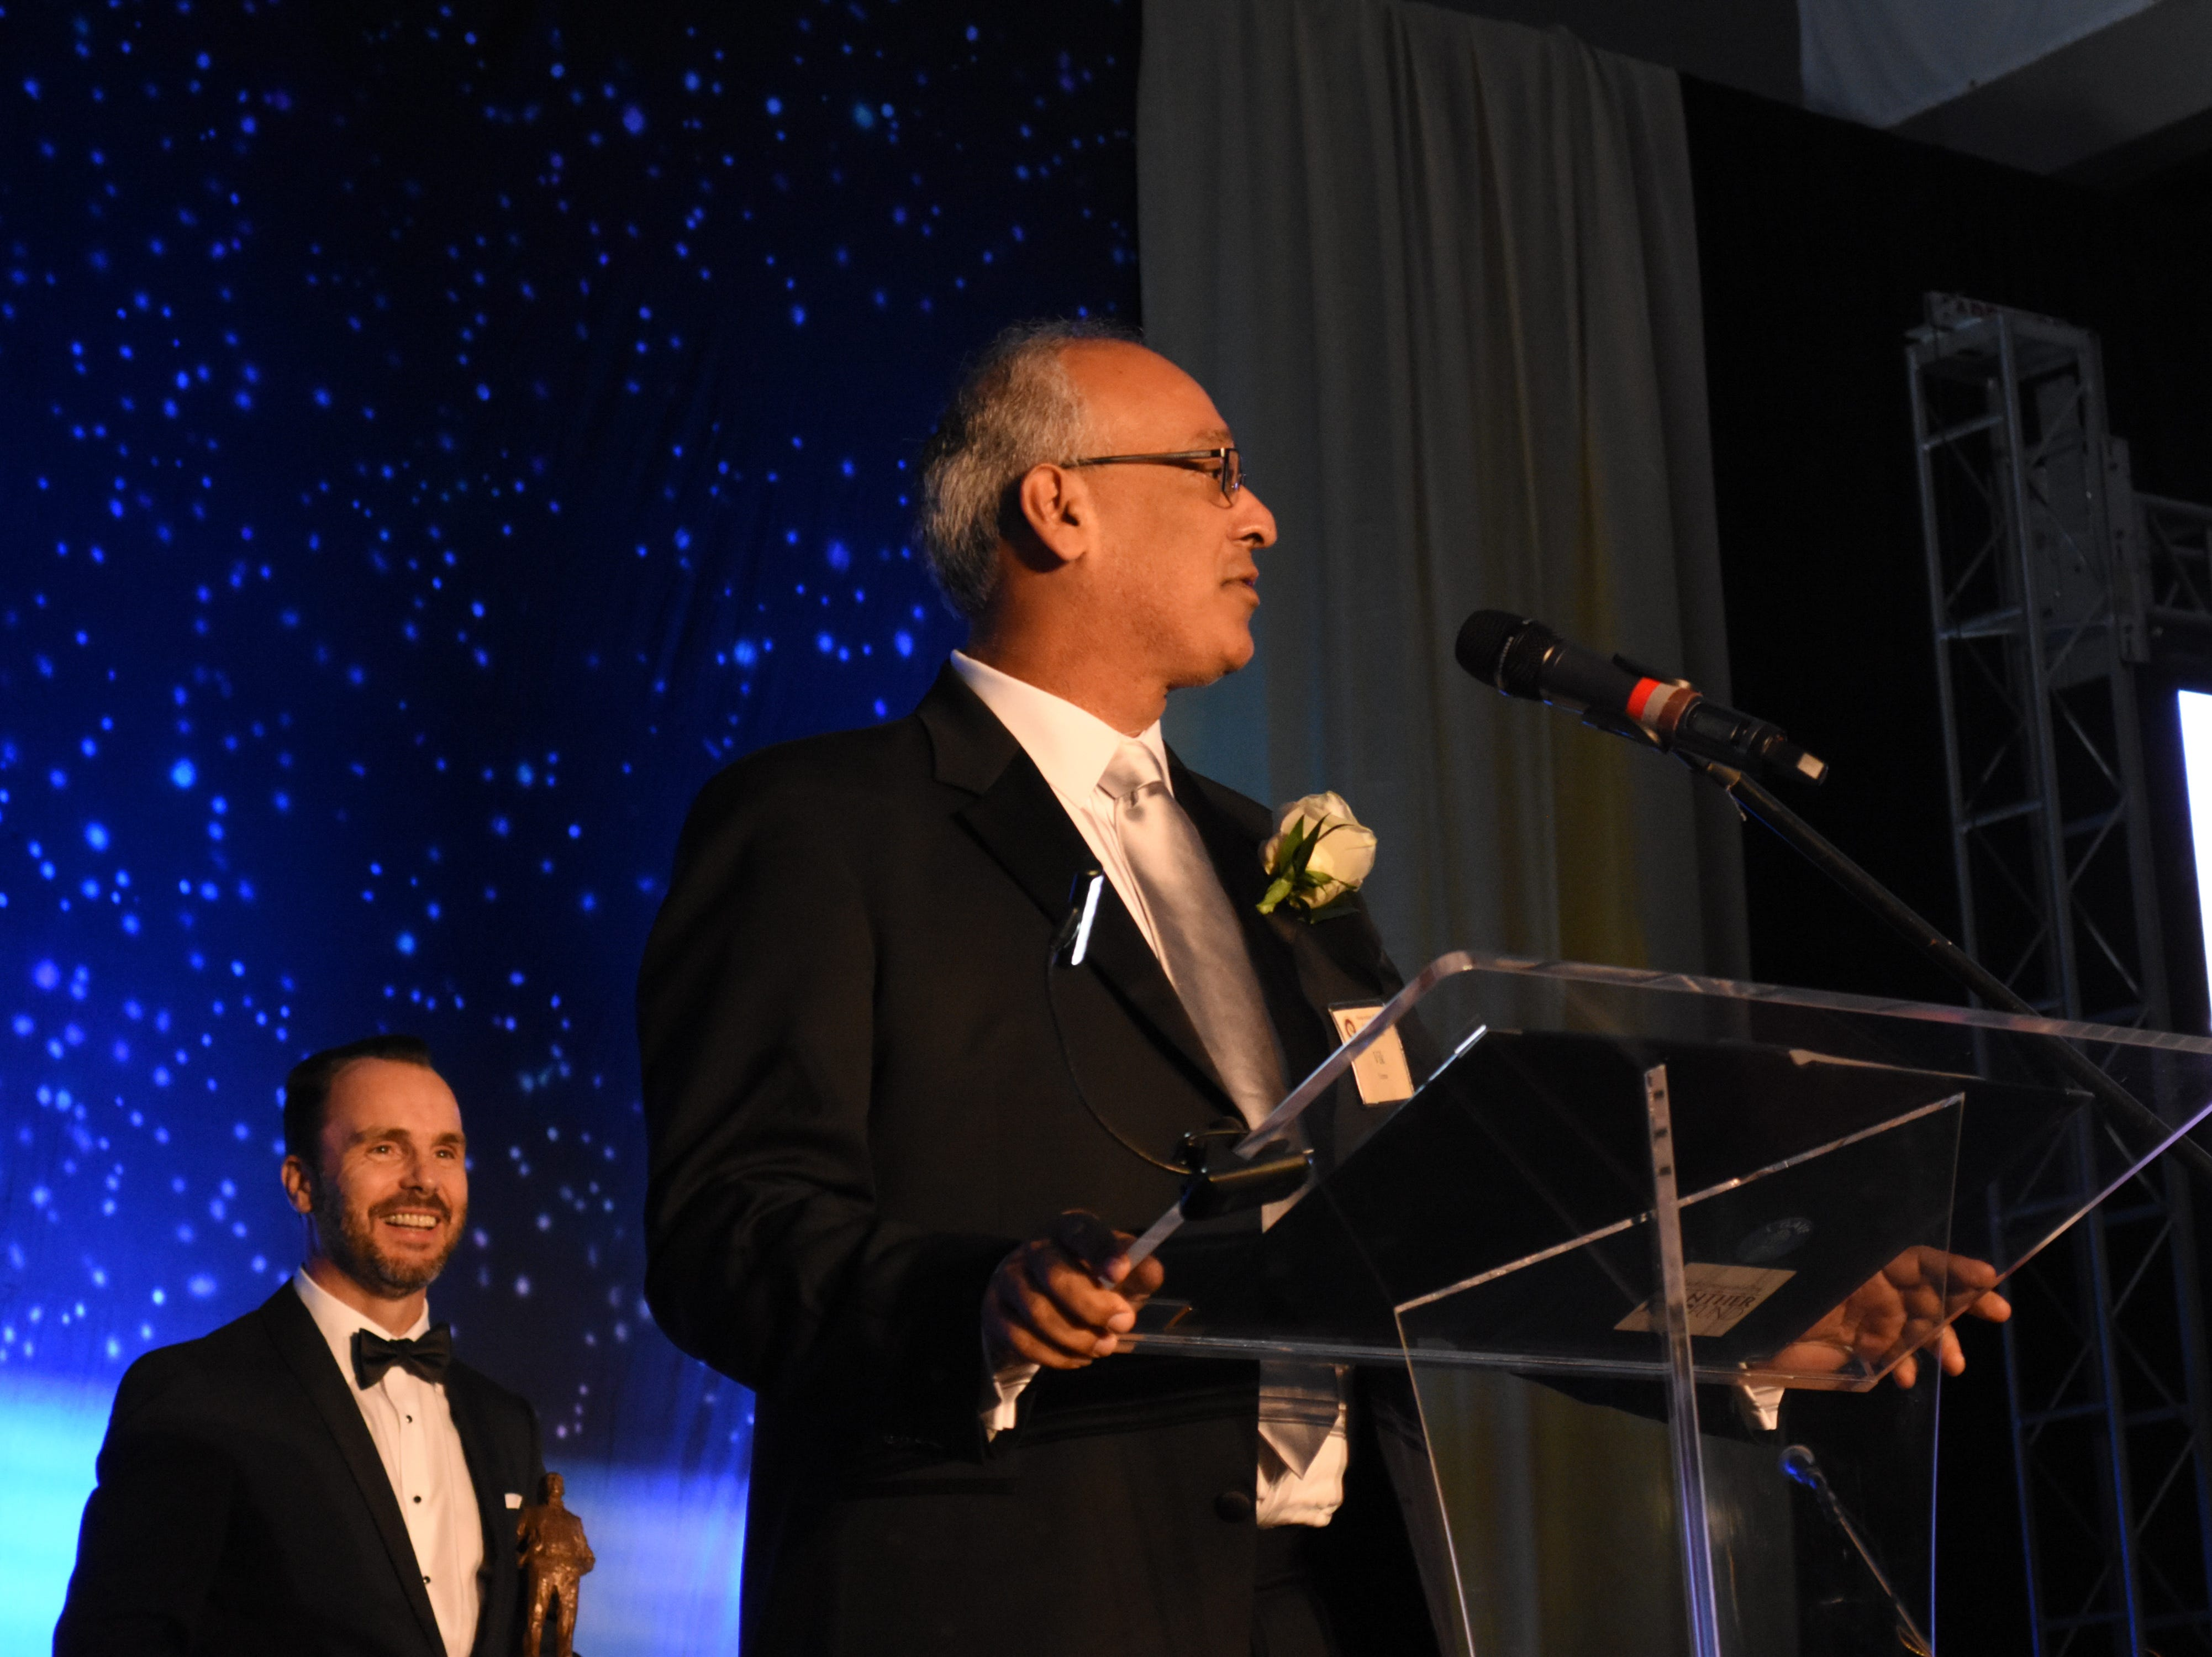 2018's Jerome P. Keuper Distinguished Alumni Award recipient Vik Verna speaks to the crowd at Florida Tech's 60th Anniversary Homecoming Gala Oct. 13, 2018, at the Clemente Center.